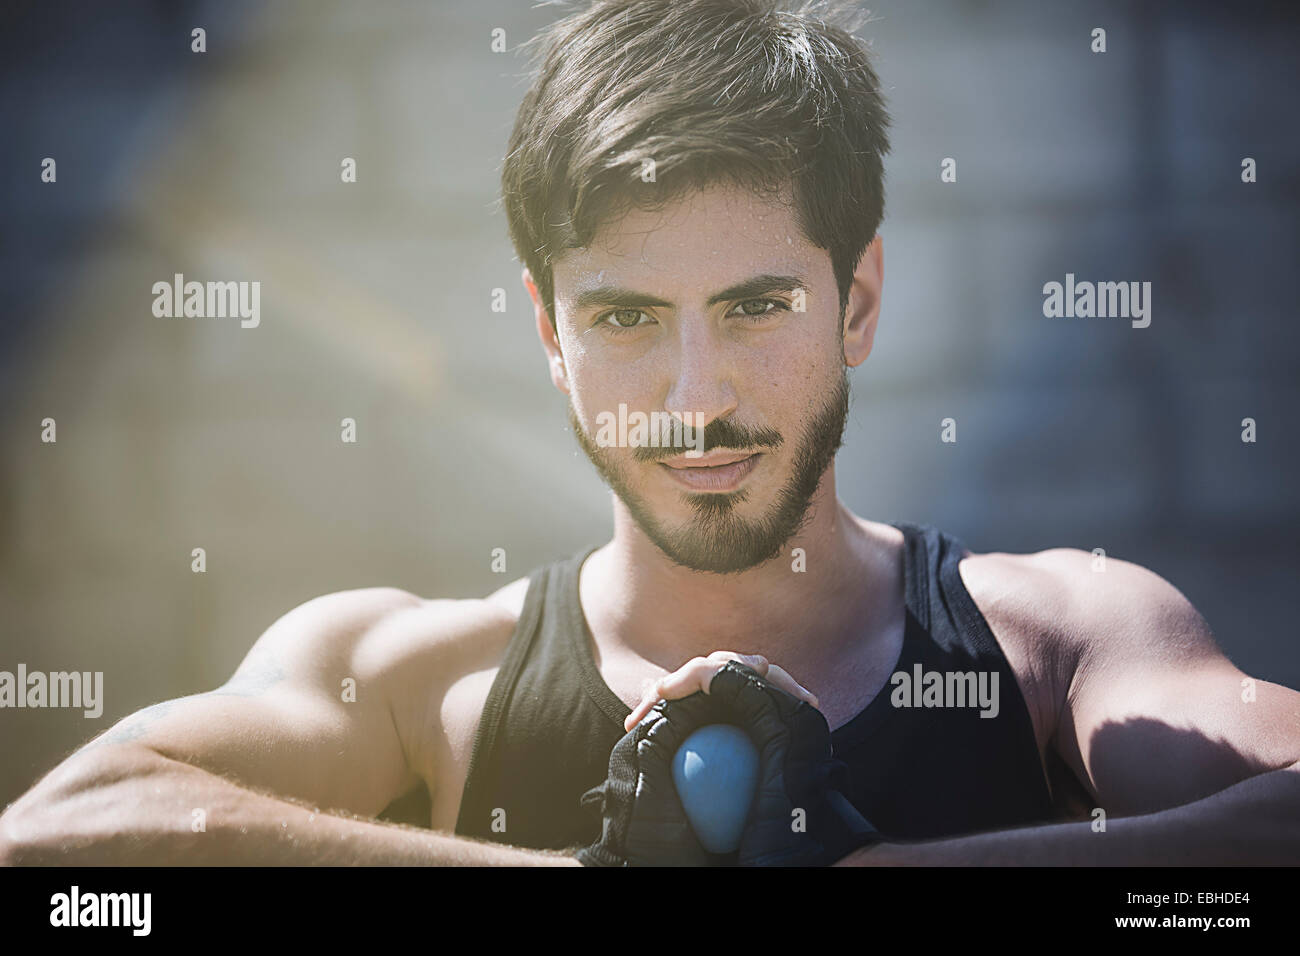 Portrait of young male handball player holding ball - Stock Image